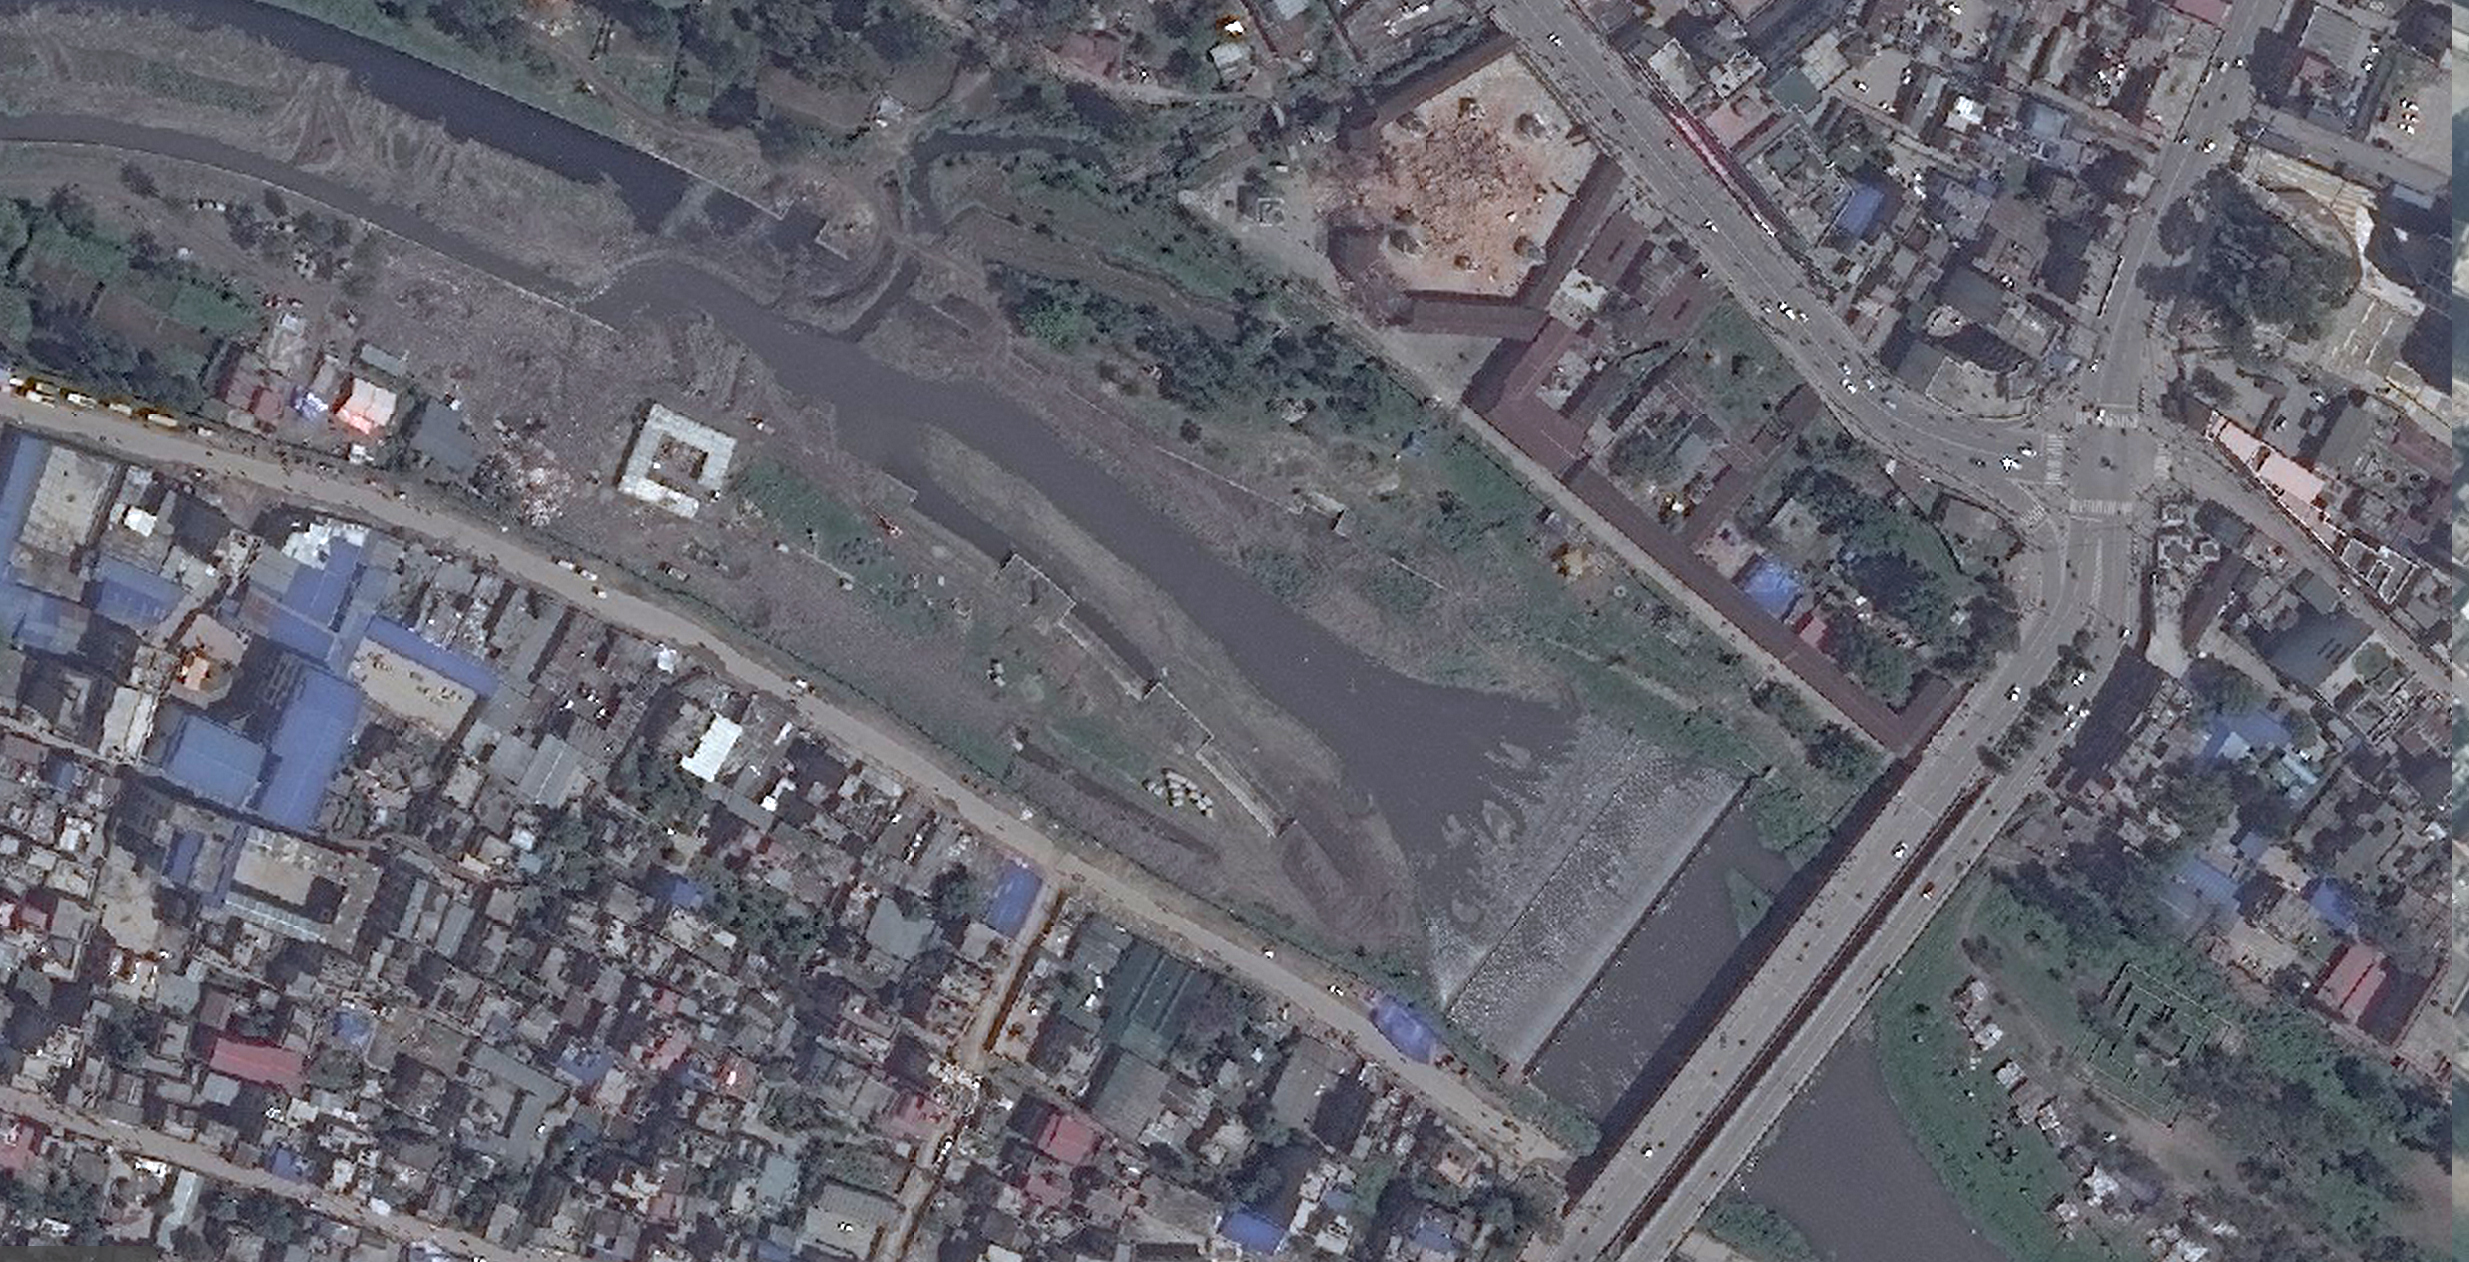 New Satellite Images Of Nepal Show Earthquakes Devastation The - Live satellite view